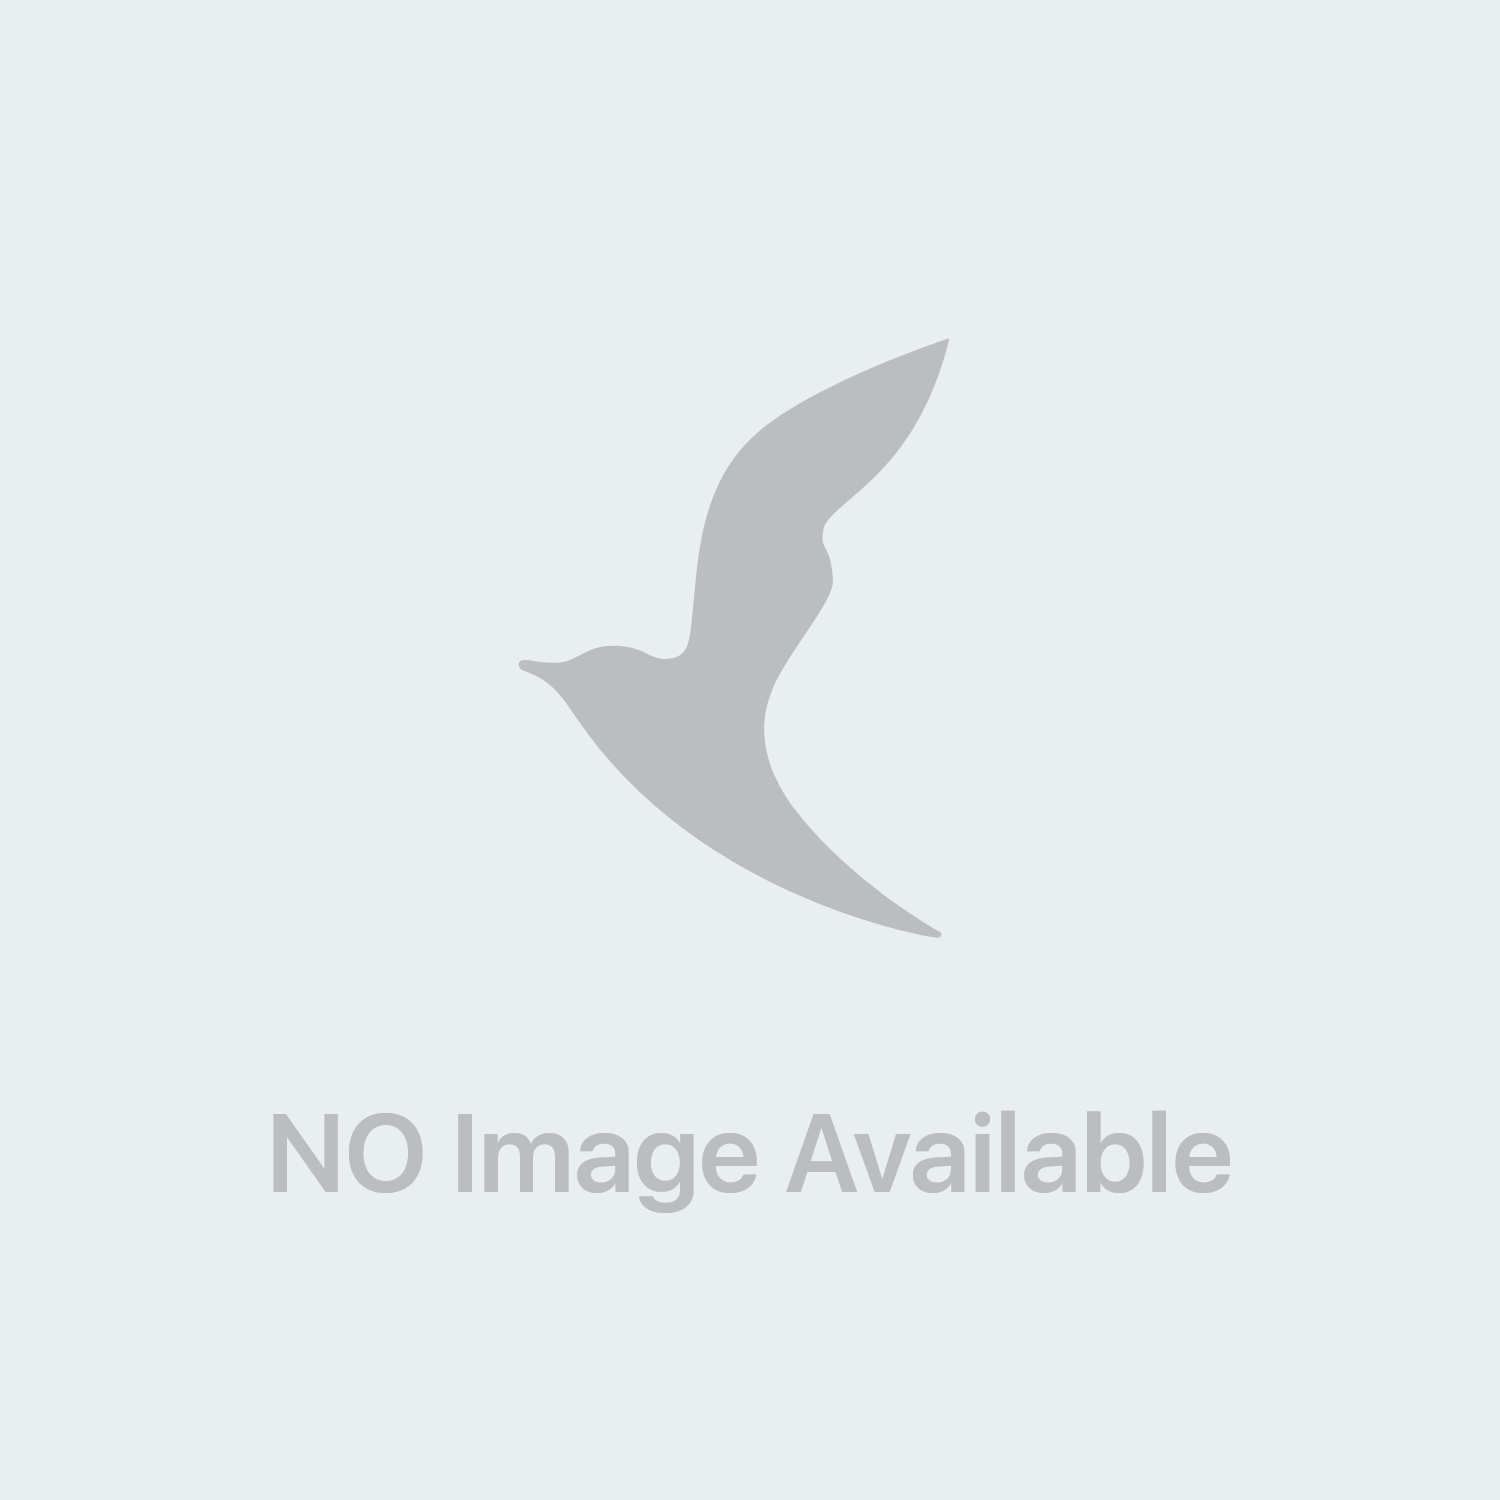 Pharmaline B-Vital Totale Gocce Orali 30 Ml